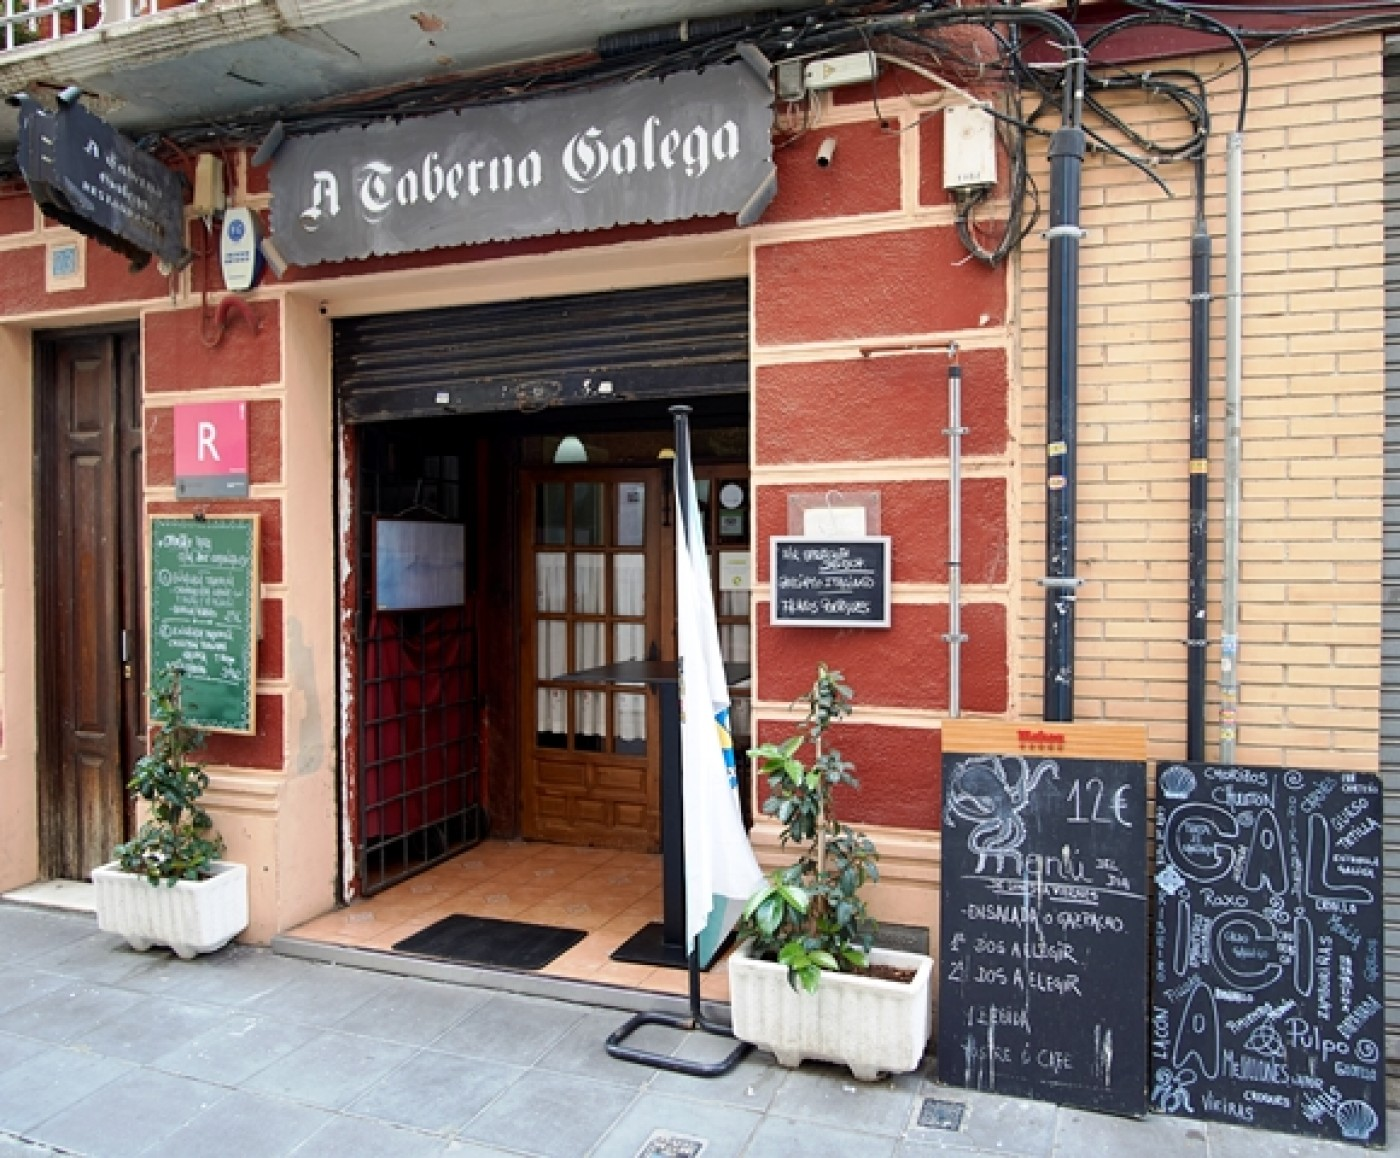 A Taberna Gallega, Galician restaurant in Cartagena